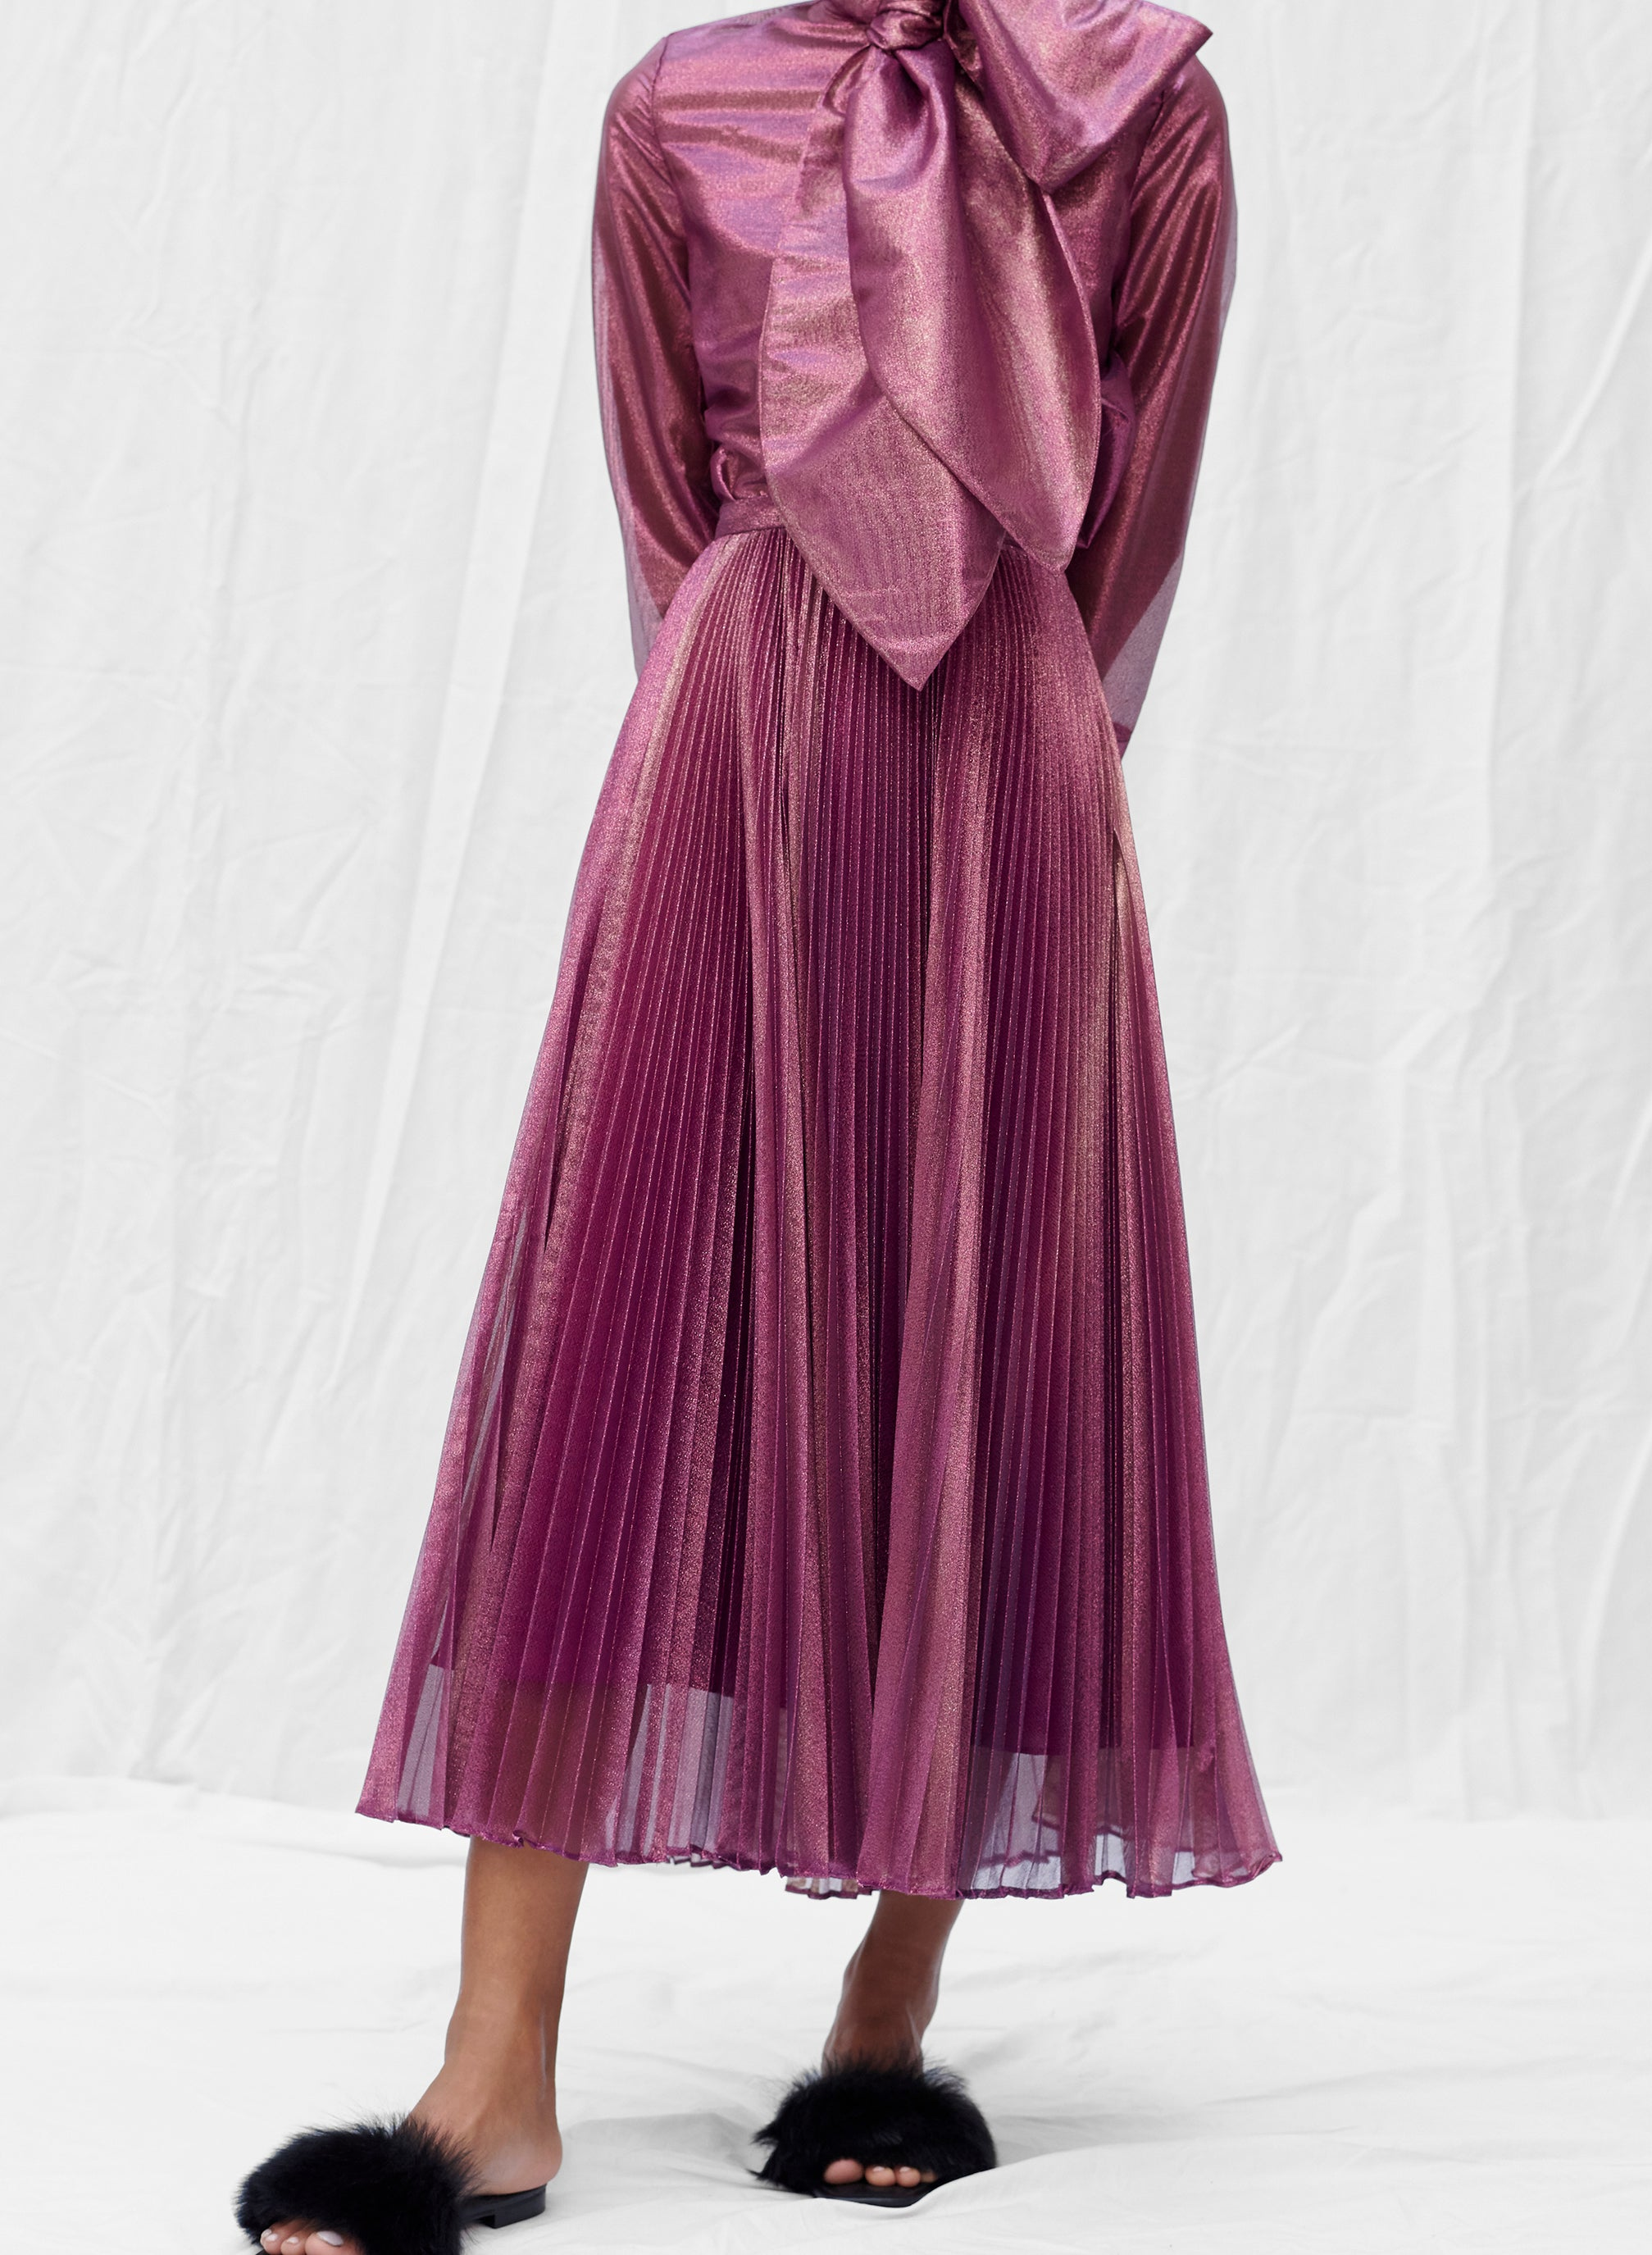 claudia li fall winter 2019 holiday pleated skirt in purple magenta translucent metallic silk lurex voile